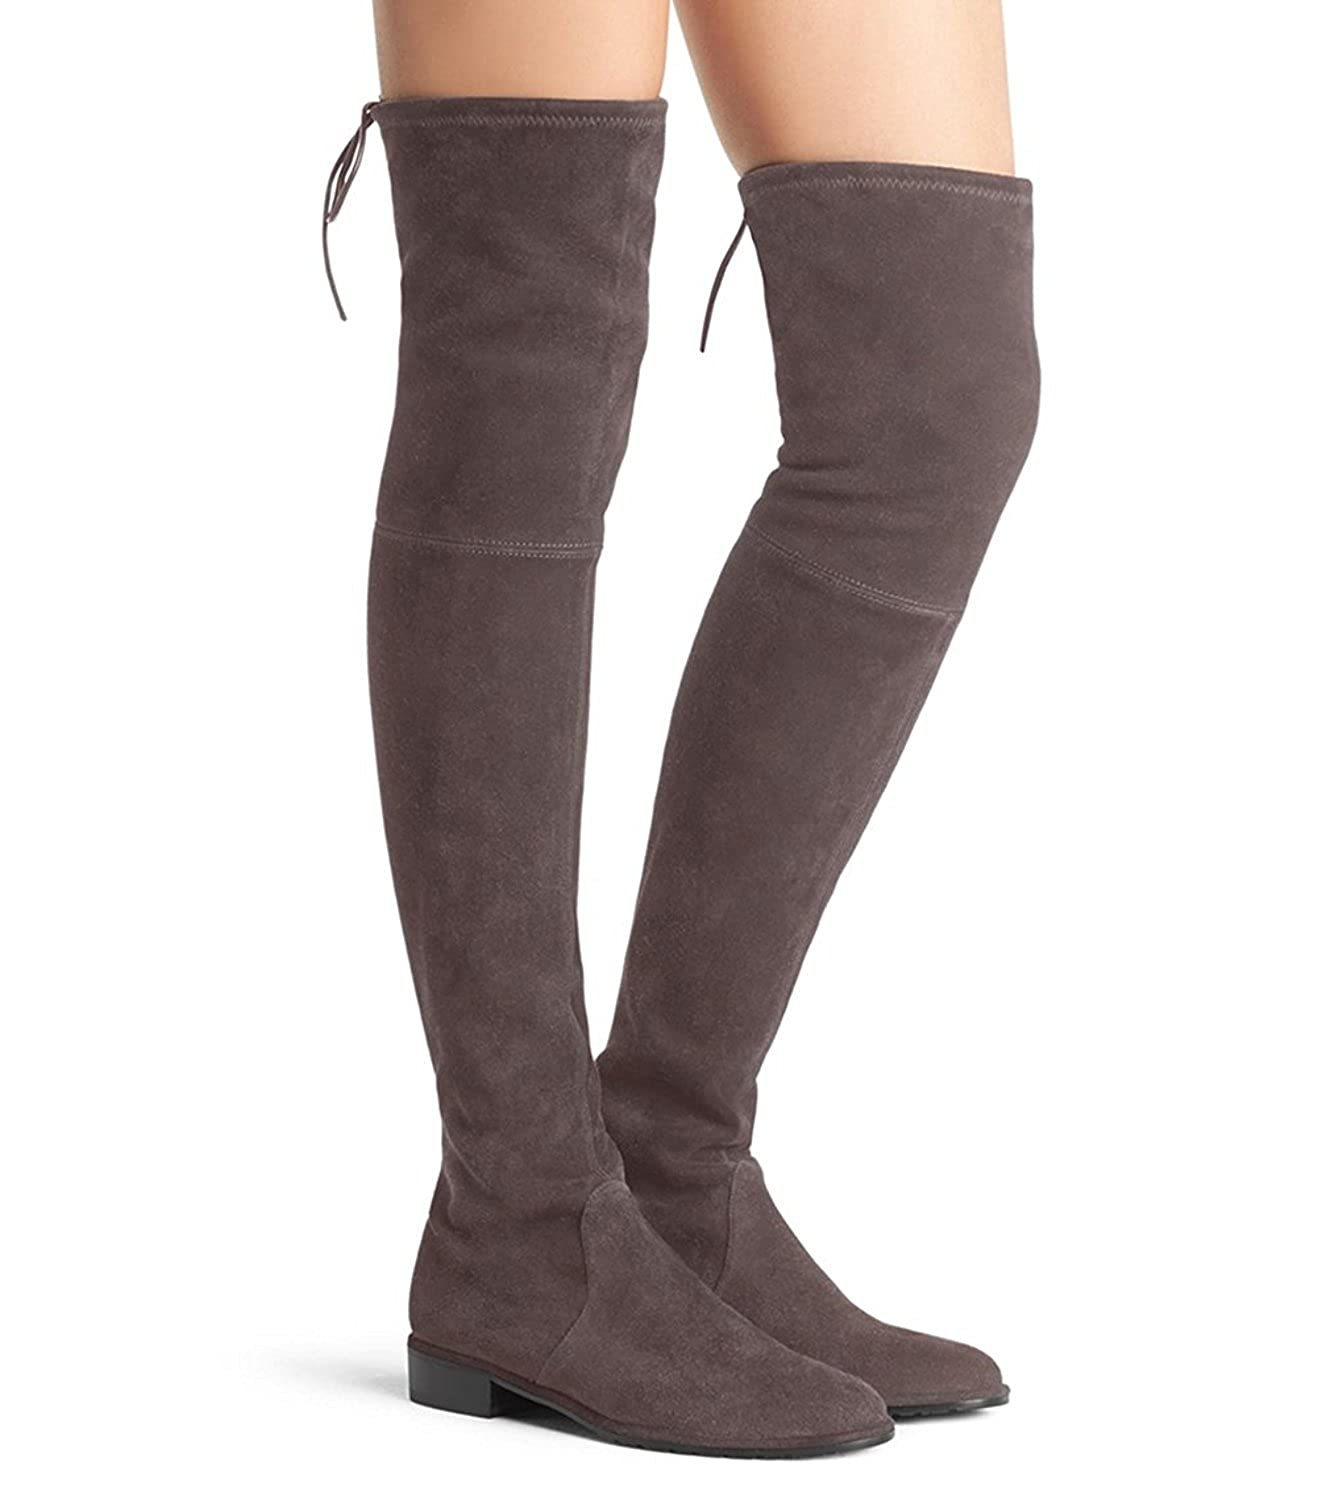 34ea05369da Jushee Knee High Boots for Women Round Toe Thigh High Over The Knee Boots  Stretch Suede Flat Heel Tall Booties Taupe Tan Size 13 UK 46 EU   Amazon.co.uk  ...